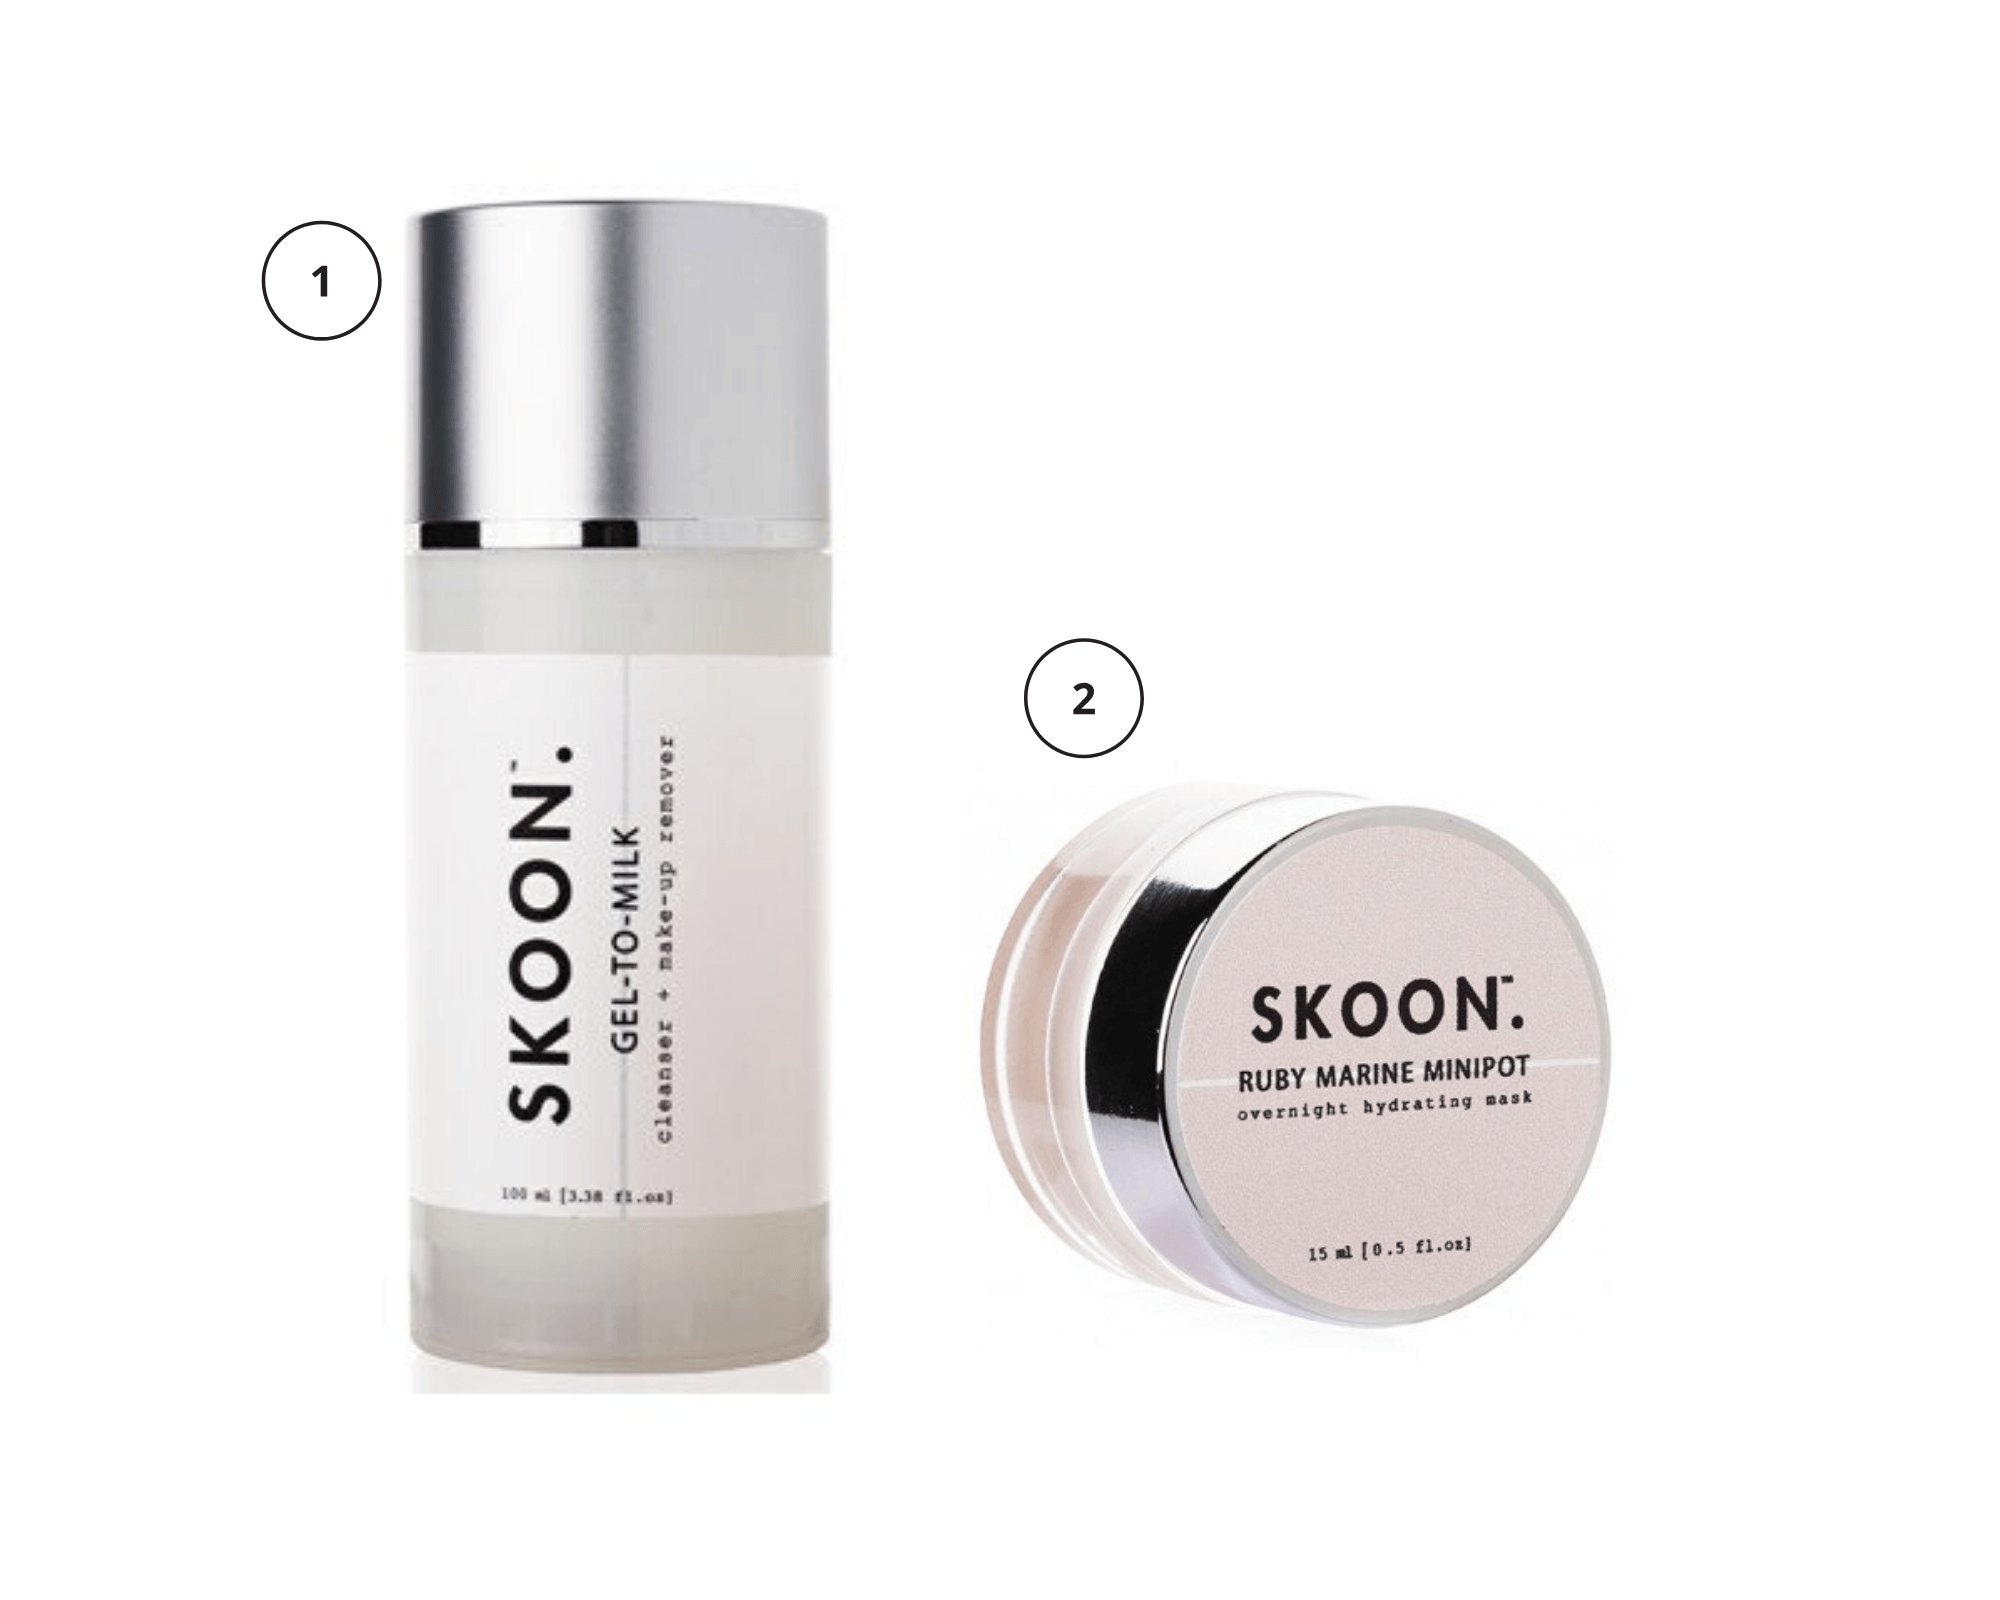 SKOON. Clean Beauty Products South Africa4